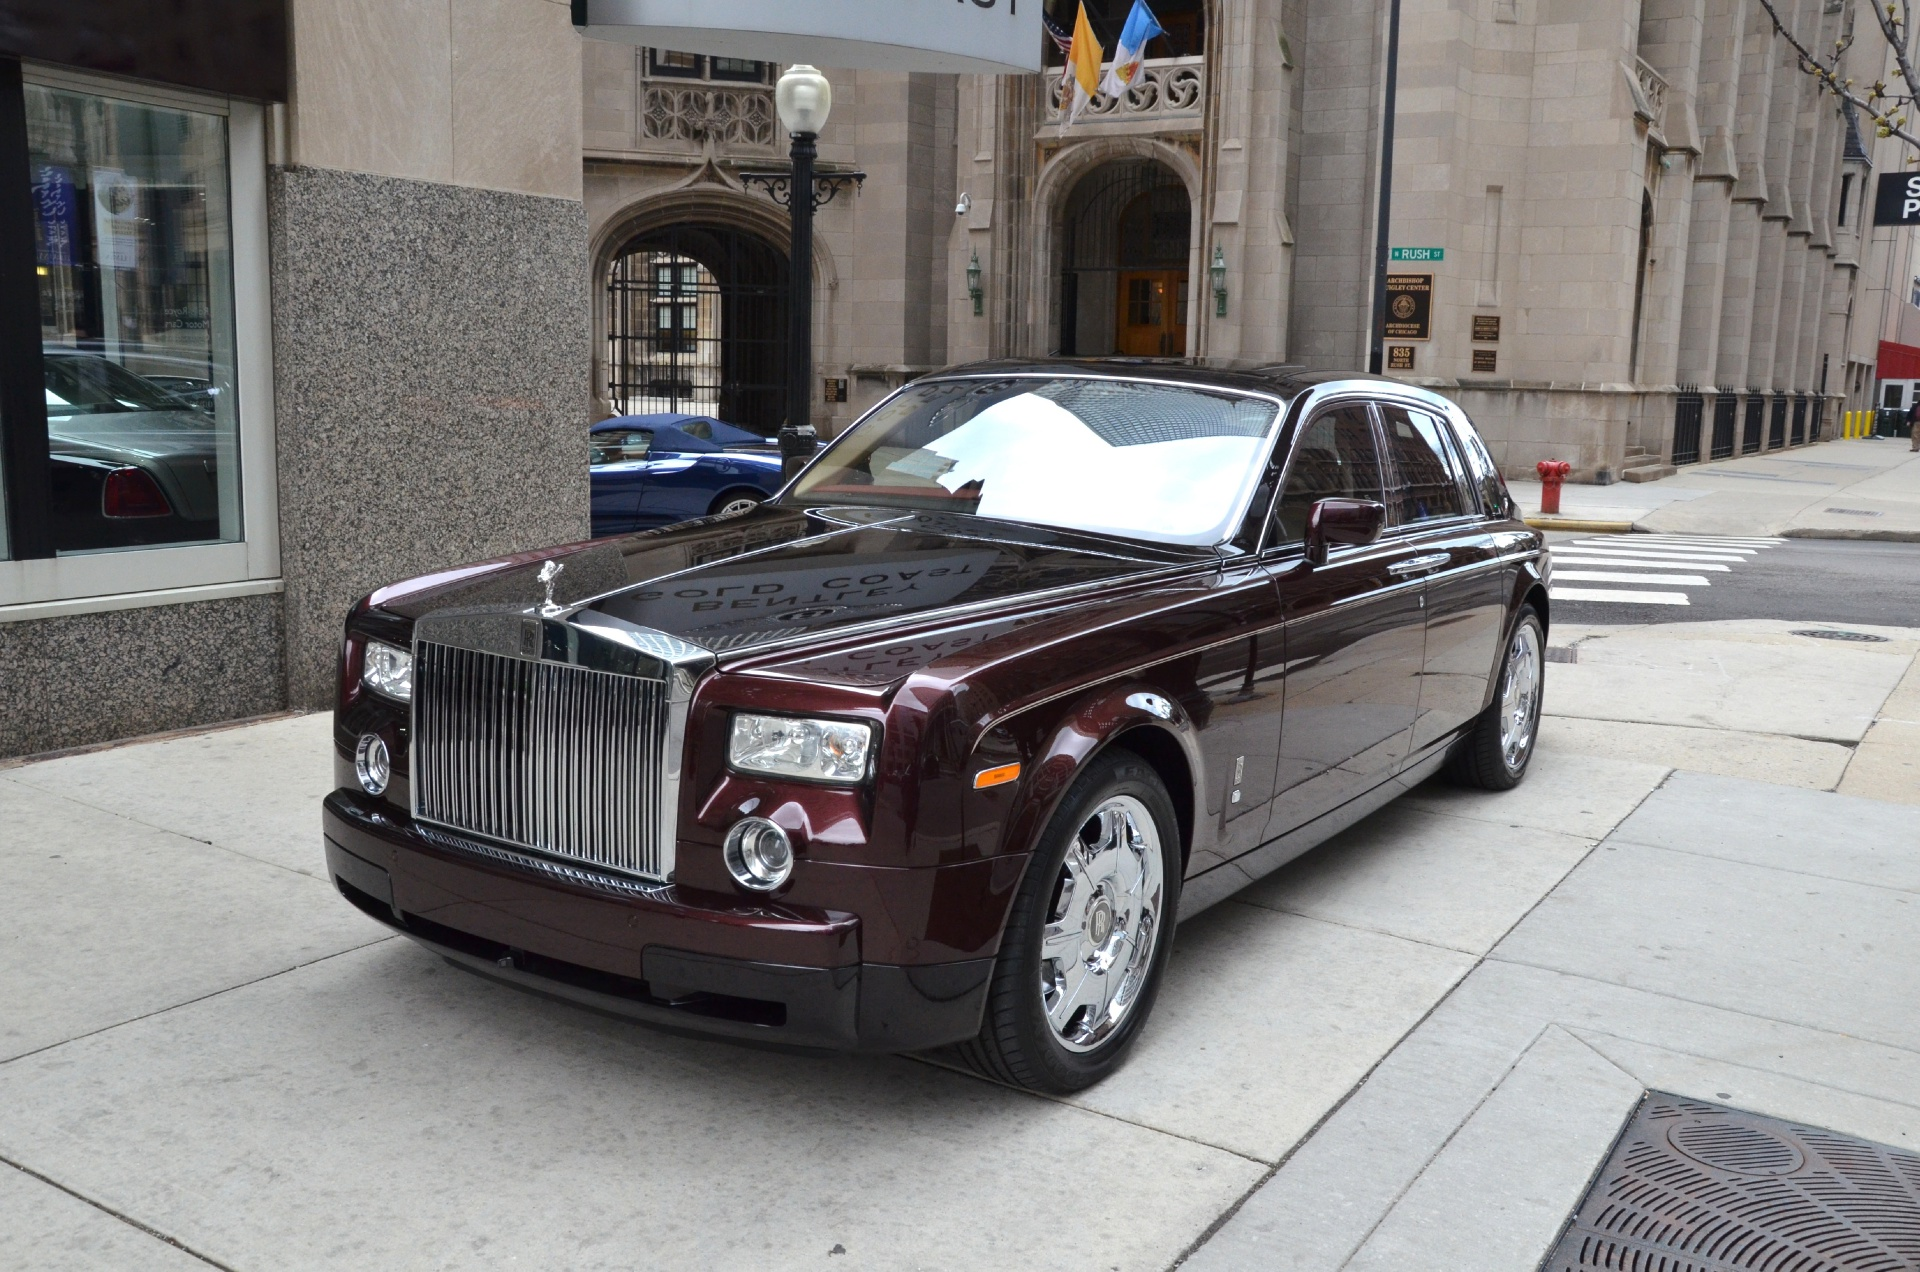 Lebron James   Worth as well Kristin Smith Miss Ohio together with 2012 Bmw 7 Series 750li Xdrive C 3150 moreover 2014 Rolls Royce Wraith C 3745 in addition 3. on lamborghini ohio